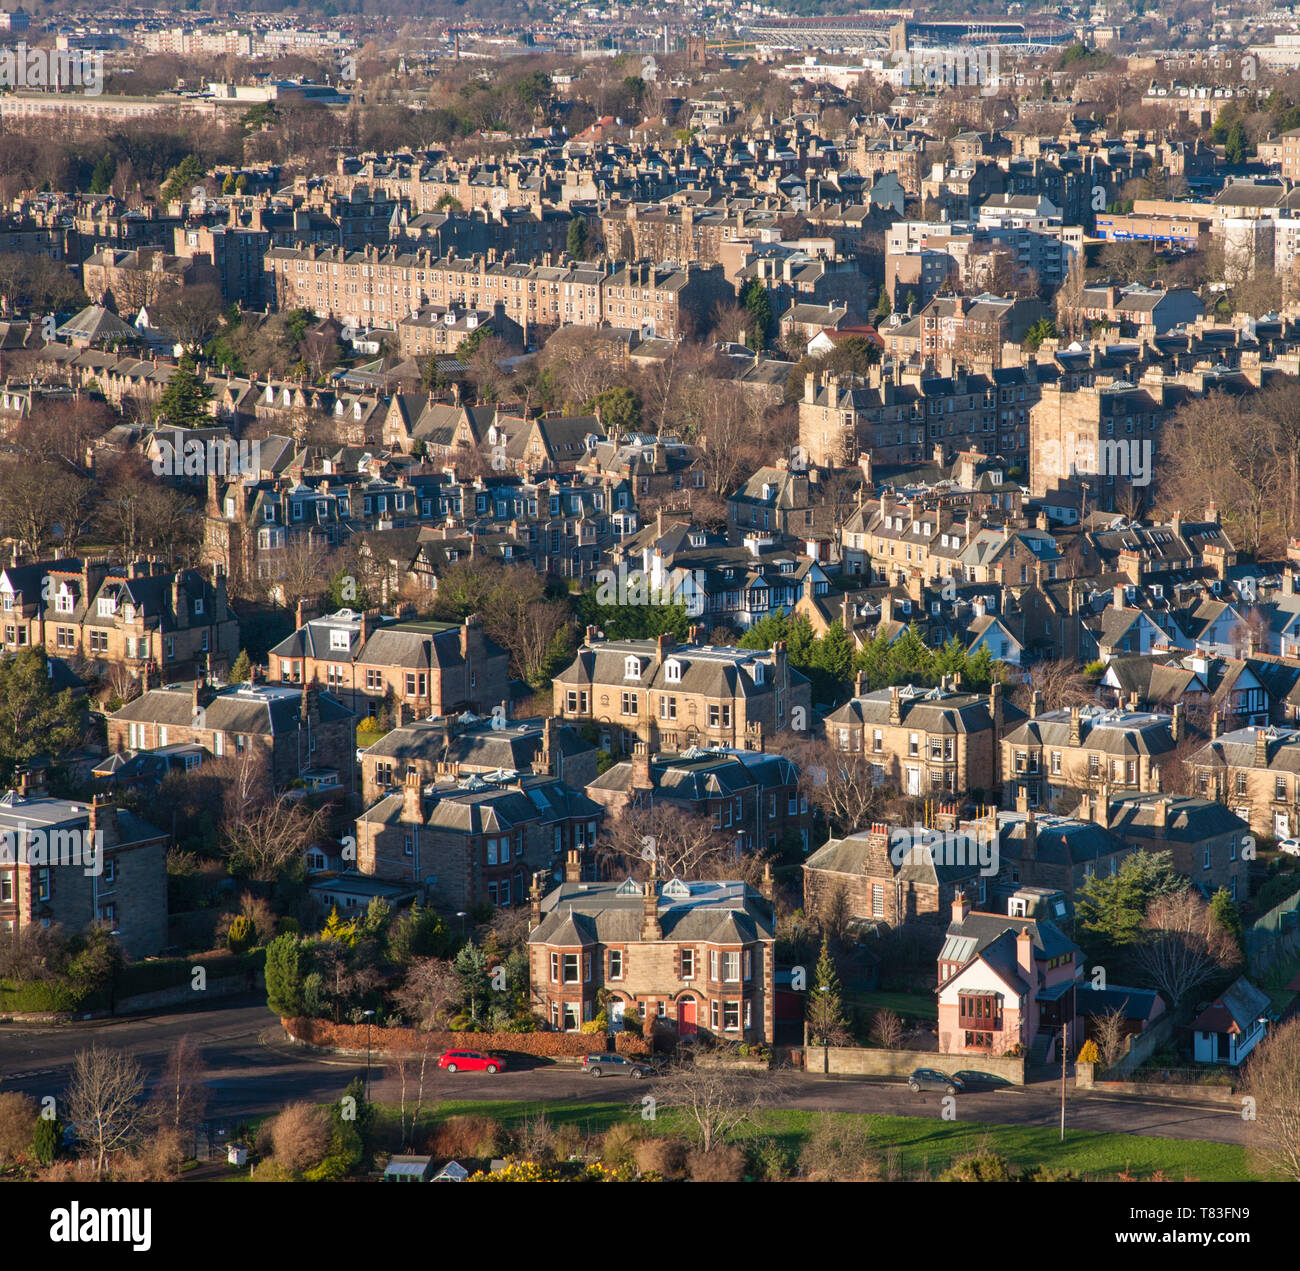 Edinburgh, City of Edinburgh, Scotland. View from Blackford Hill over the rooftops of the Morningside district. - Stock Image